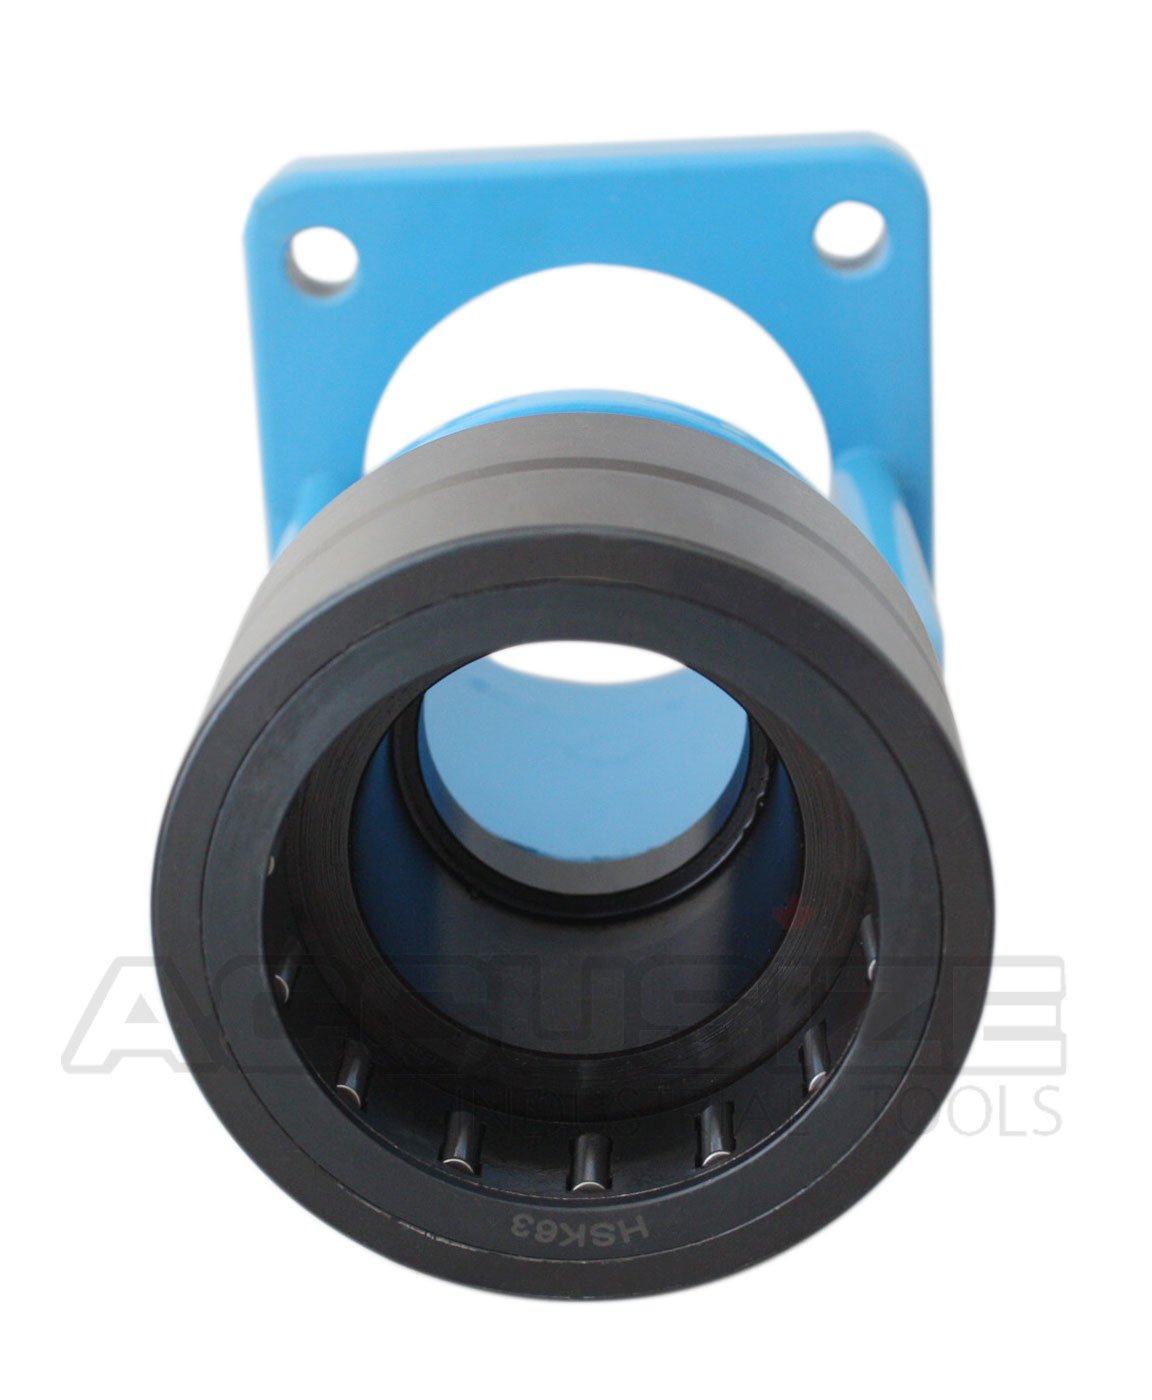 Accusize Tools - HSK Tooling Tightening Fixture for HSK63 A/E, NBT40/BT40, HSK0-0063